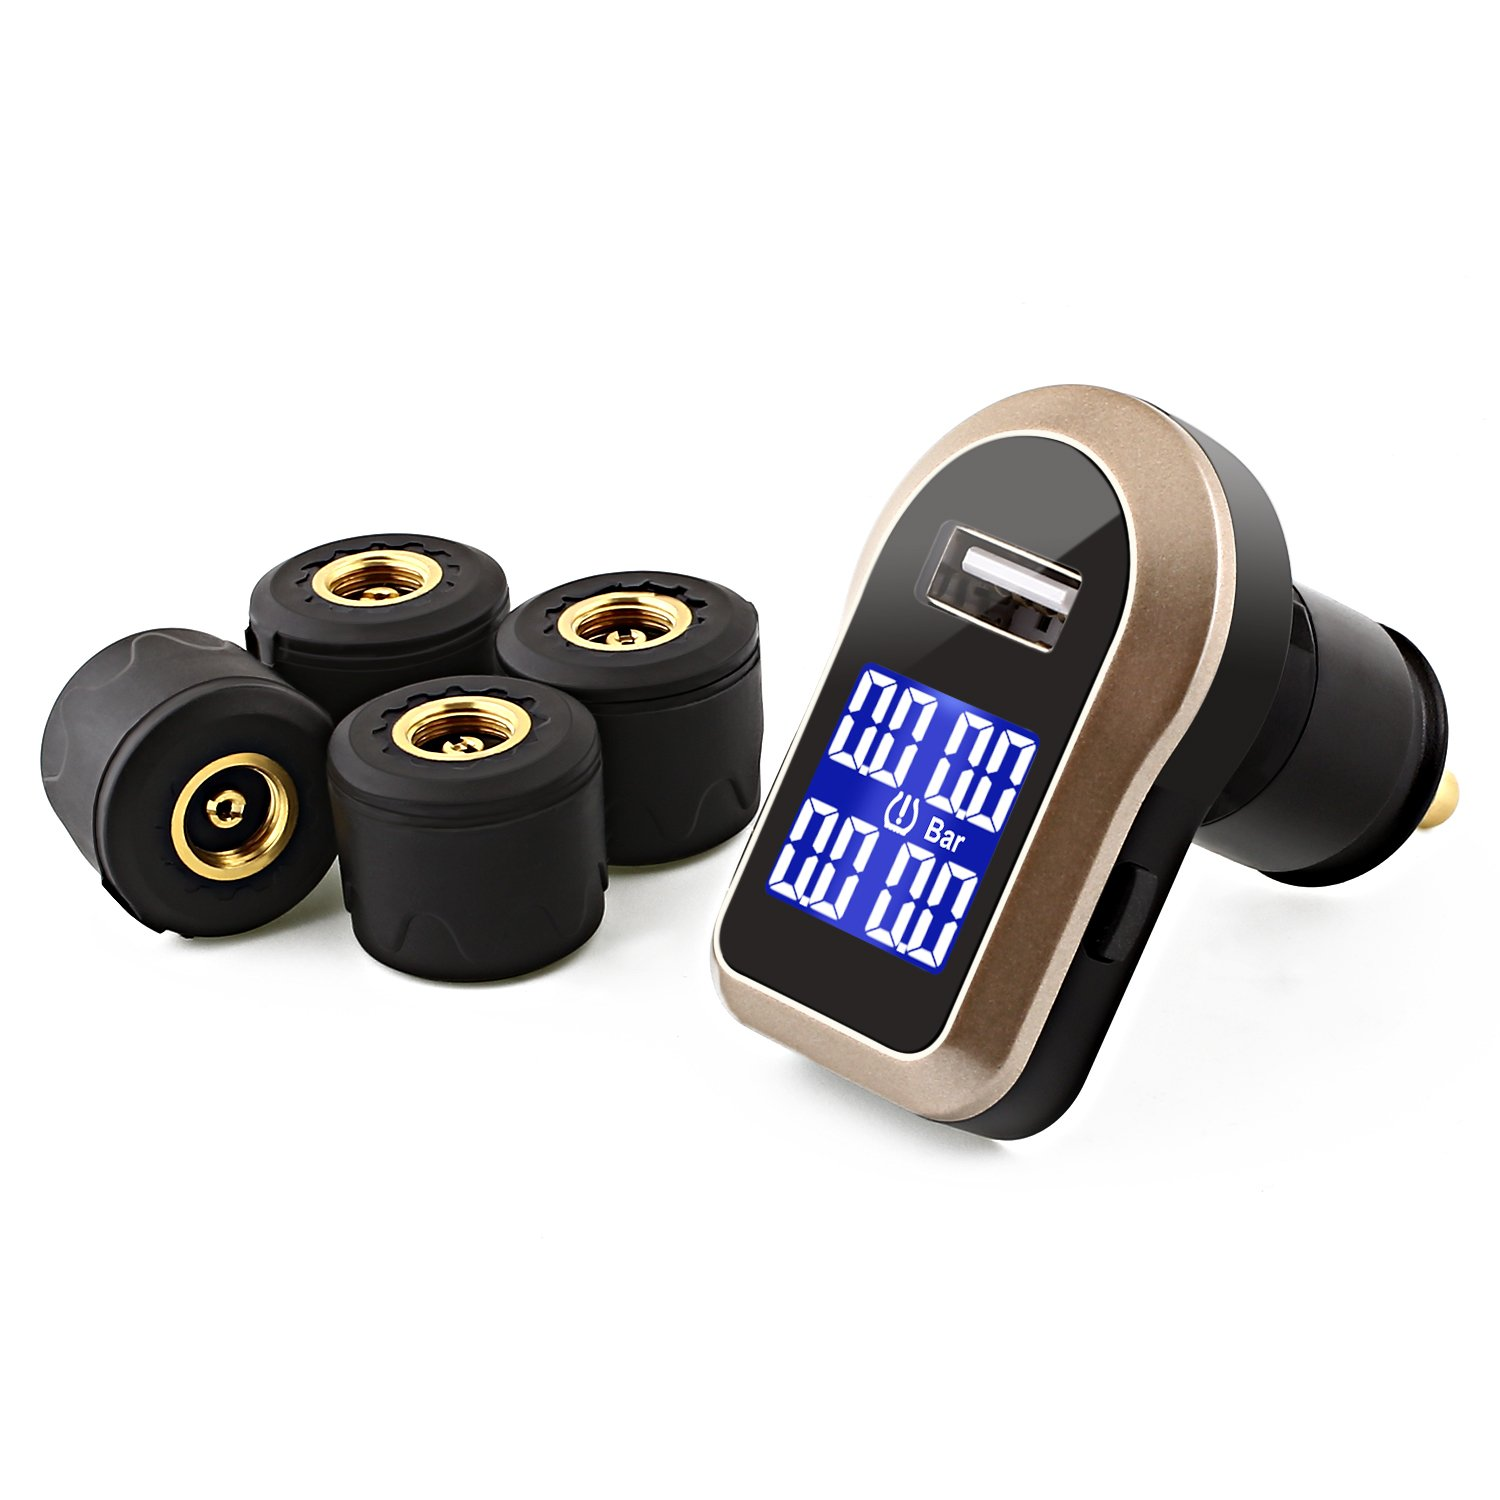 Wireless Tire Pressure Monitoring System Anyone Have